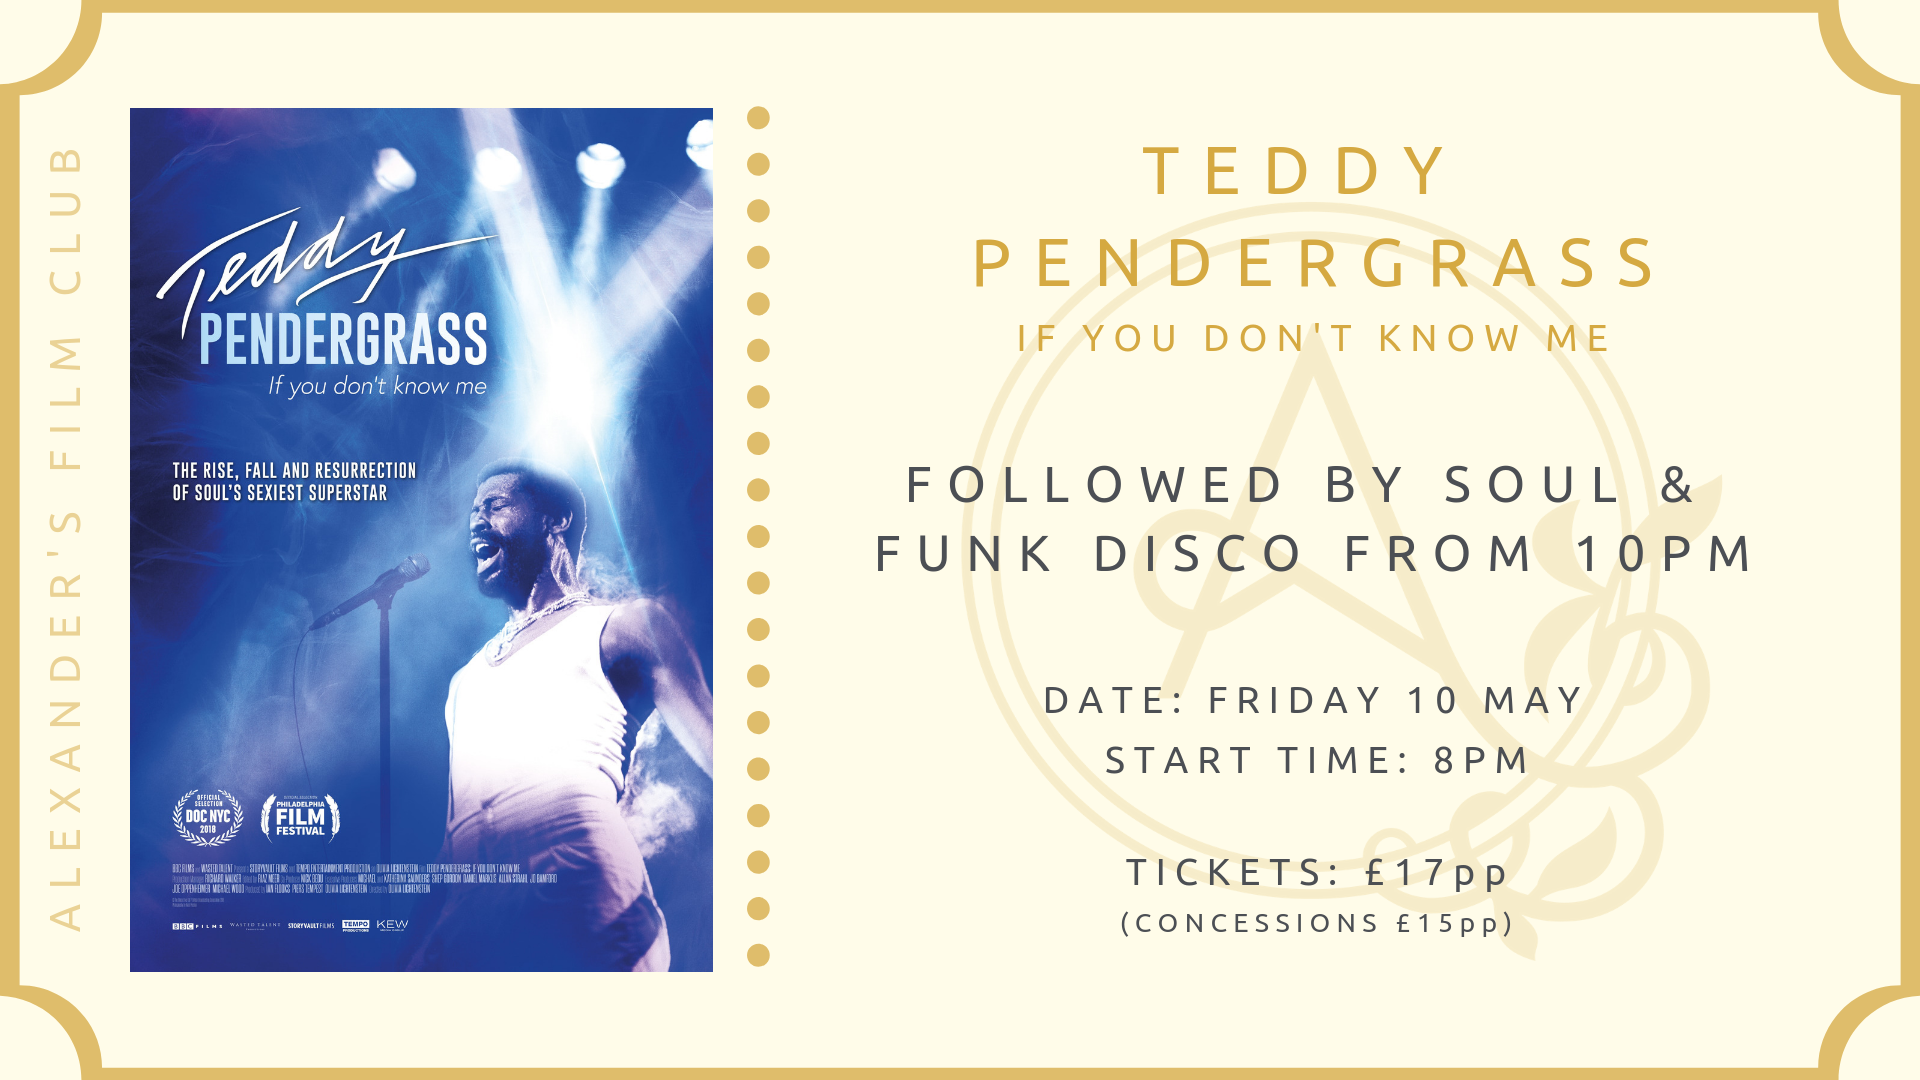 The Alexander's Film Club - 'Teddy Pendergrass: If you don't know me' screening & Soul & Funk Disco